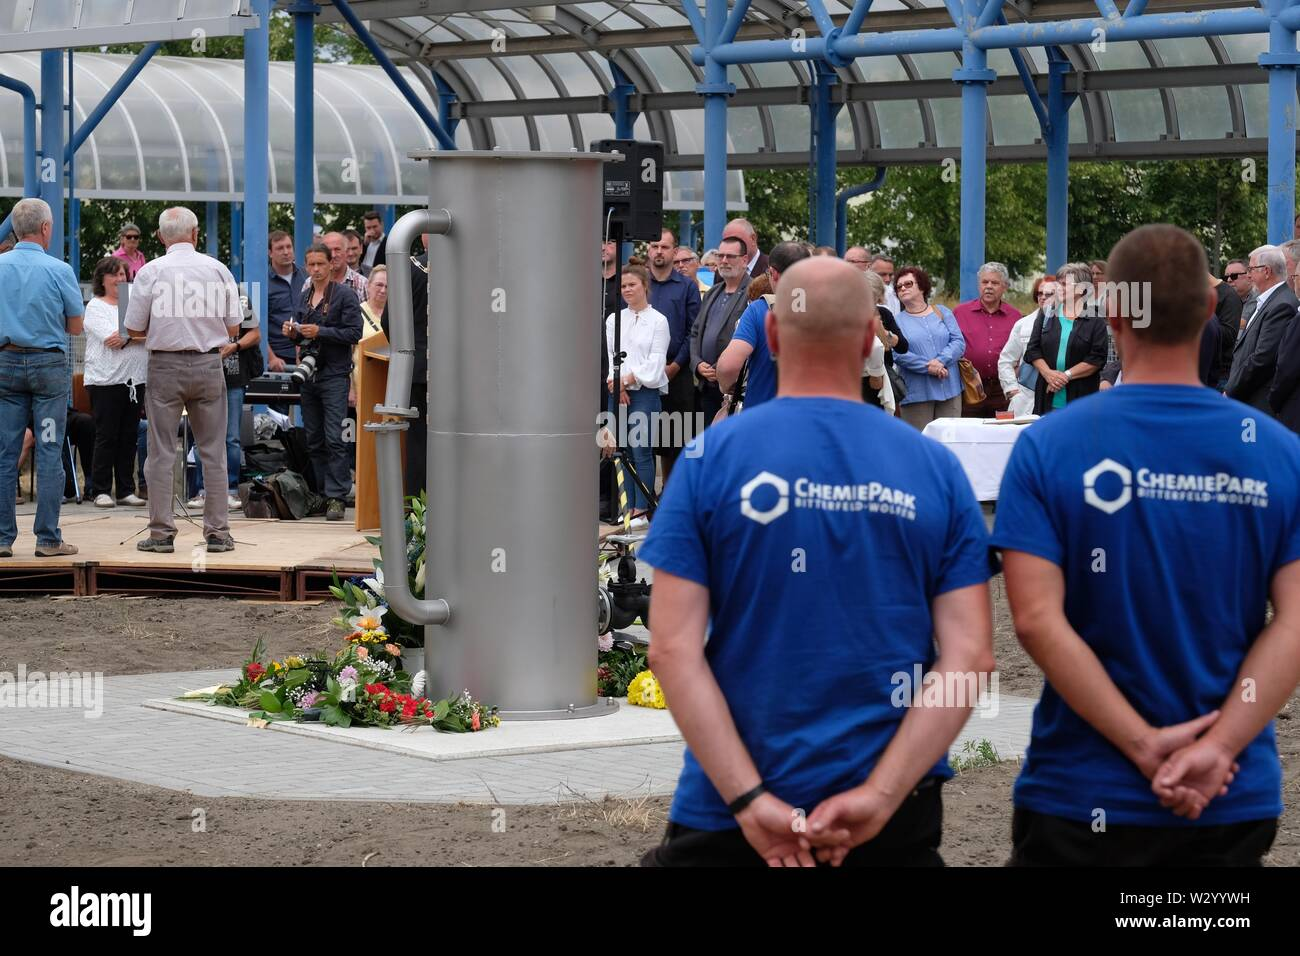 11 July 2019, Saxony-Anhalt, Bitterfeld-Wolfen: Participants in a commemoration ceremony stand at a monument in the Chemical Park. A stele commemorates the victims of the chemical accident of 11.07.1968, when 42 people died and more than 240 were injured. Photo: Sebastian Willnow/dpa-Zentralbild/ZB - Stock Image